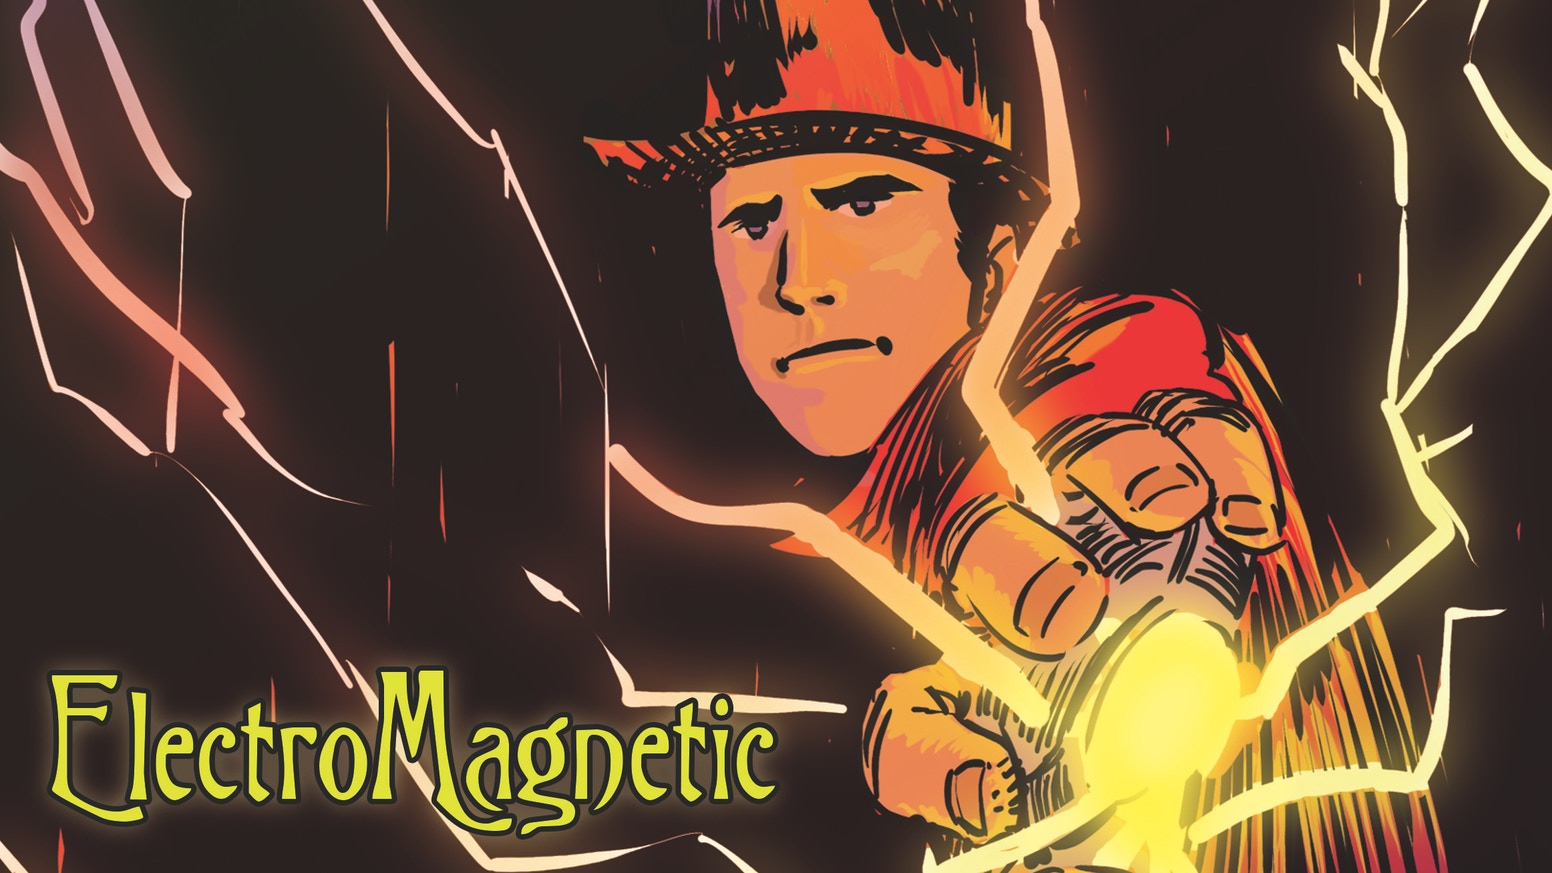 ElectroMagnetic, the Steampunk Adventure comic enters its second issue and the plot thickens as Prof Maxwell makes some new discoveries